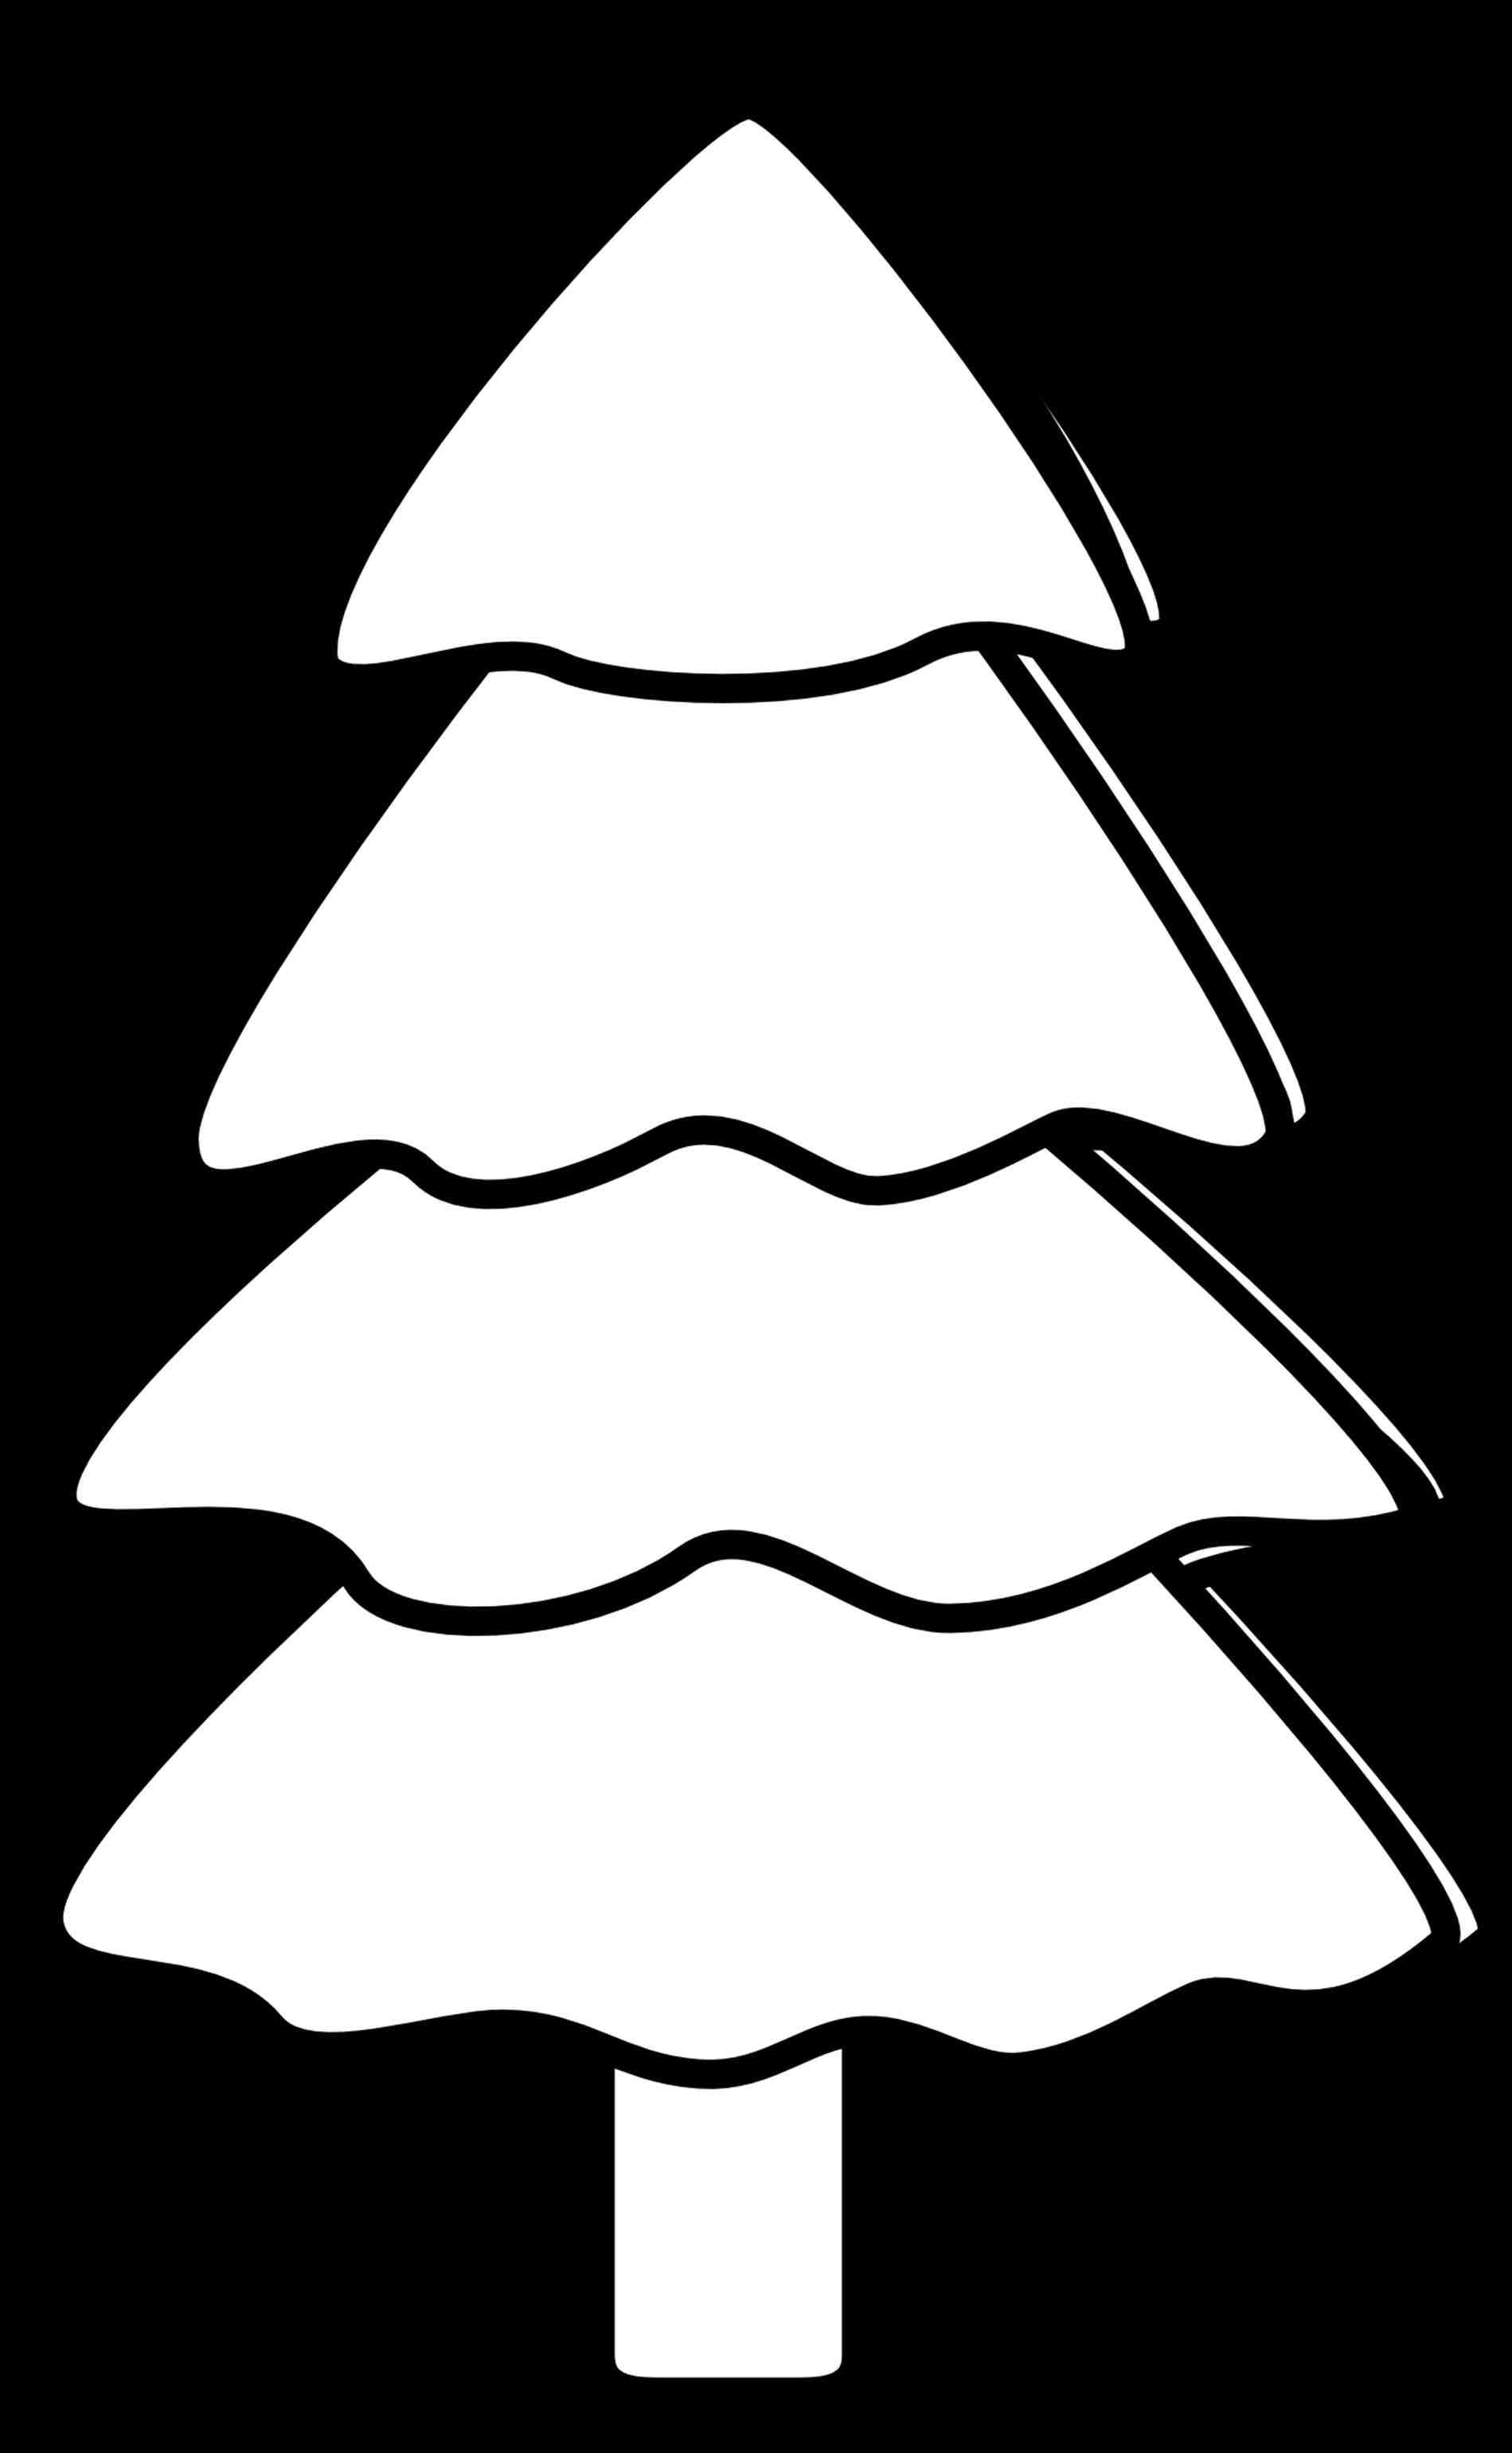 1899x3081 Abstract Christmas Tree Clipart Black And White Cheminee.website